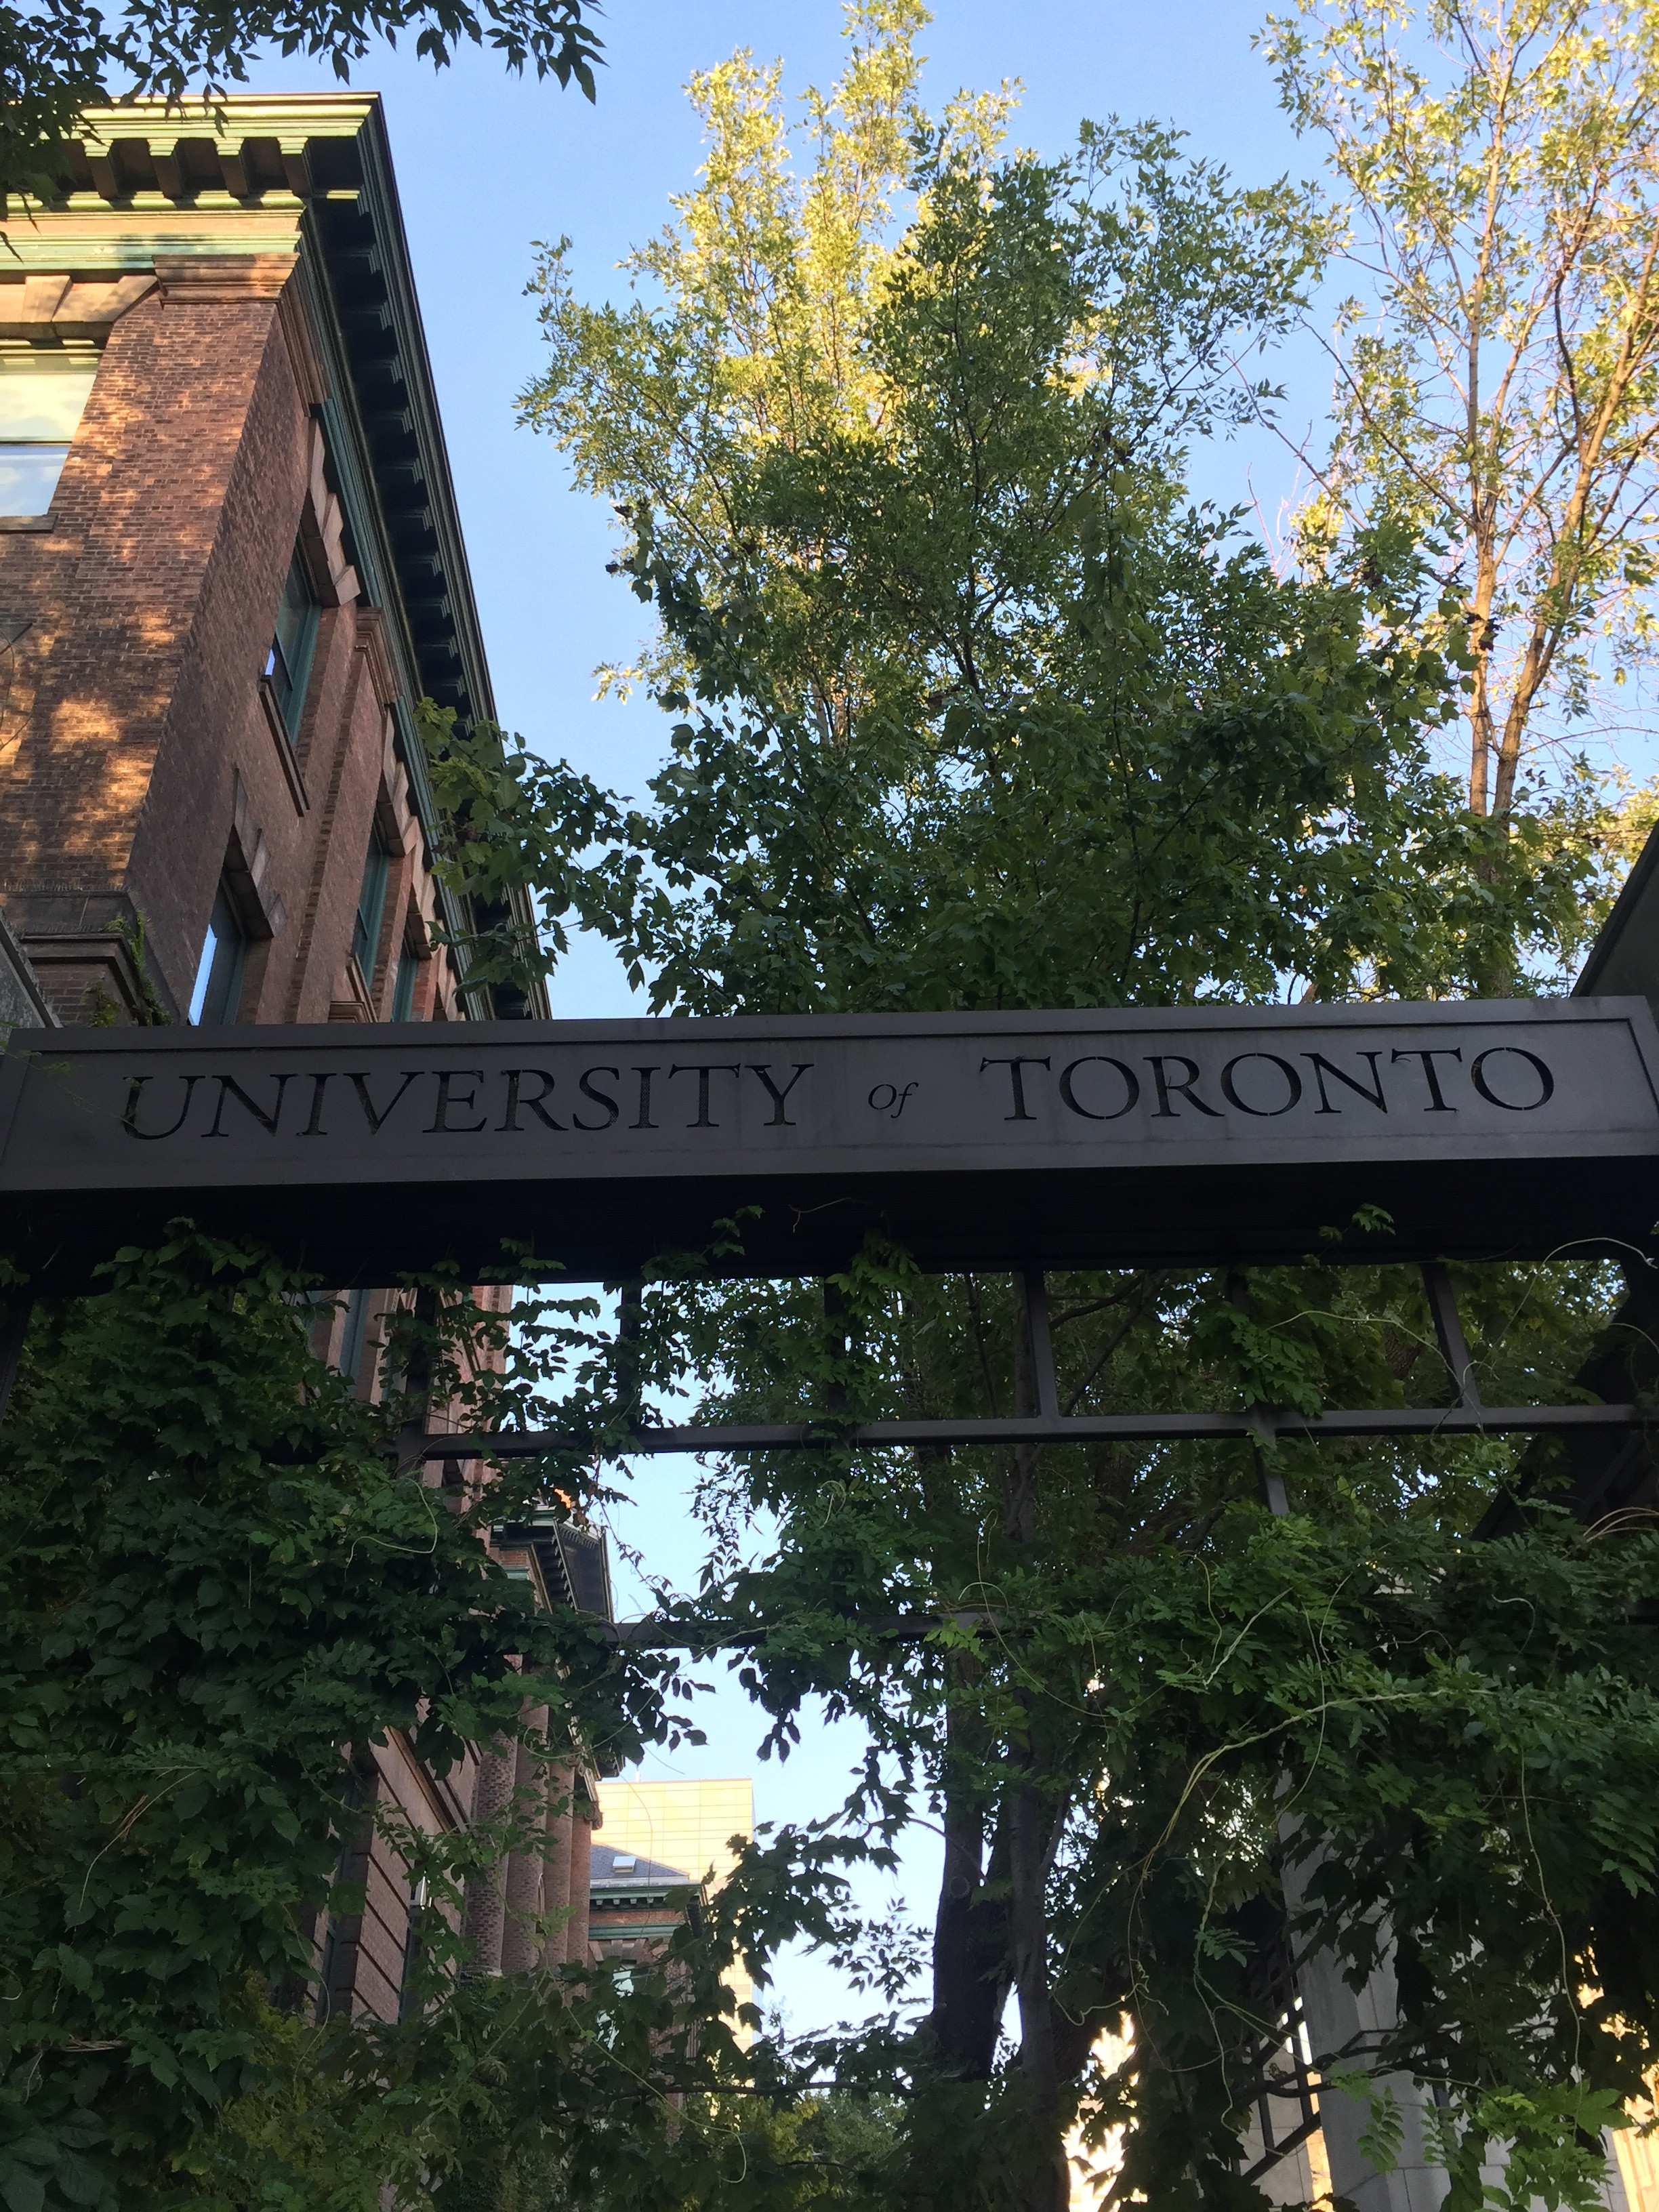 A photo a bar with an etching that reads University of Toronto in front of a red brick building and a tree